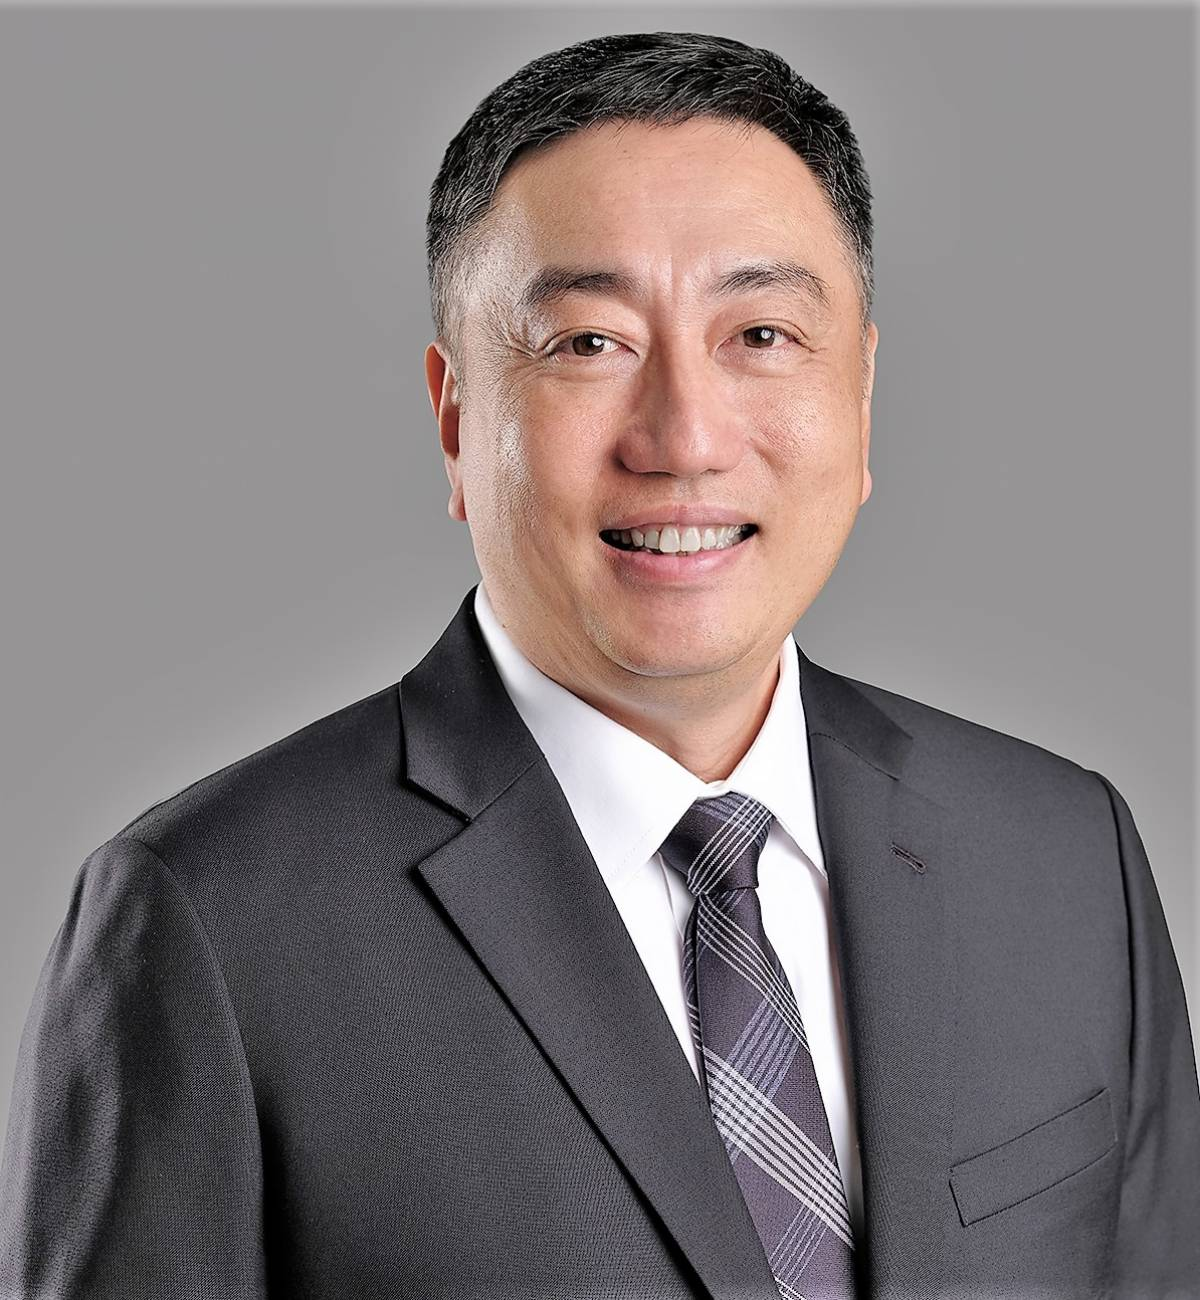 Hilton Appoints Clarence Tan as SVP Development for Asia Pacific